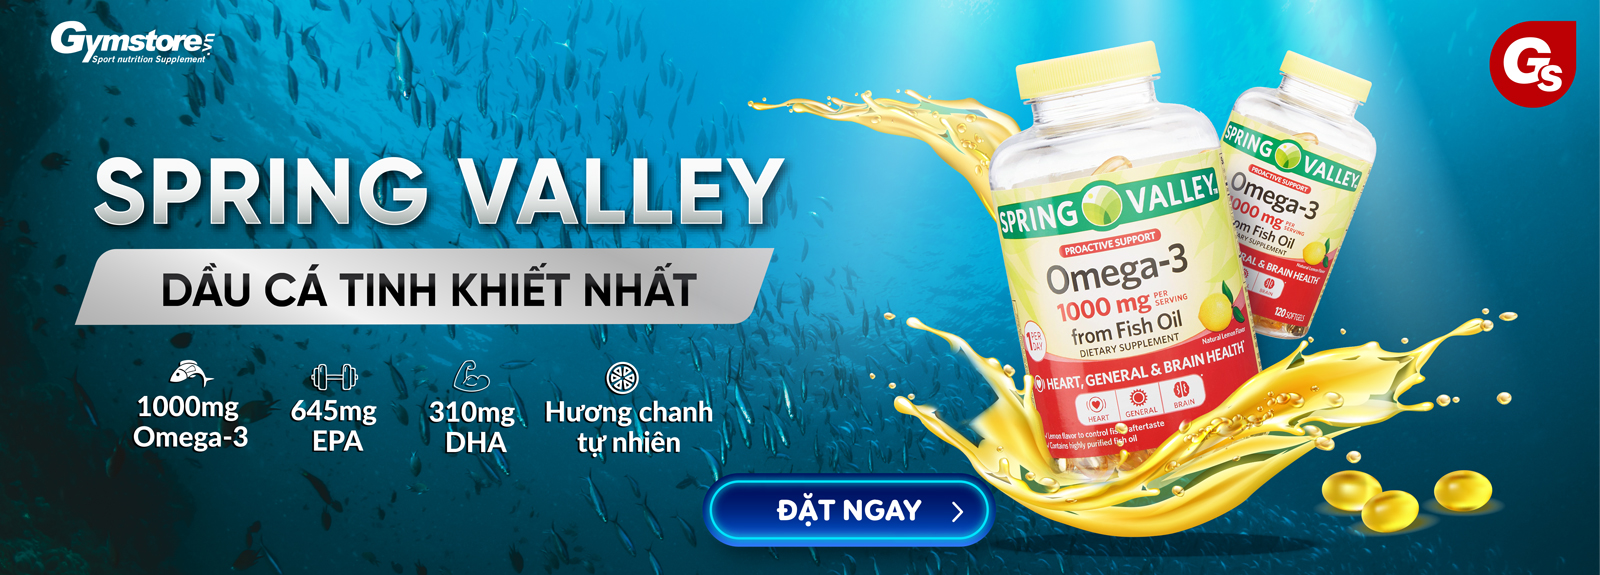 Spring-Valley-Omega3-dau-ca-ham-luong-cao-gia-tot-gymstore